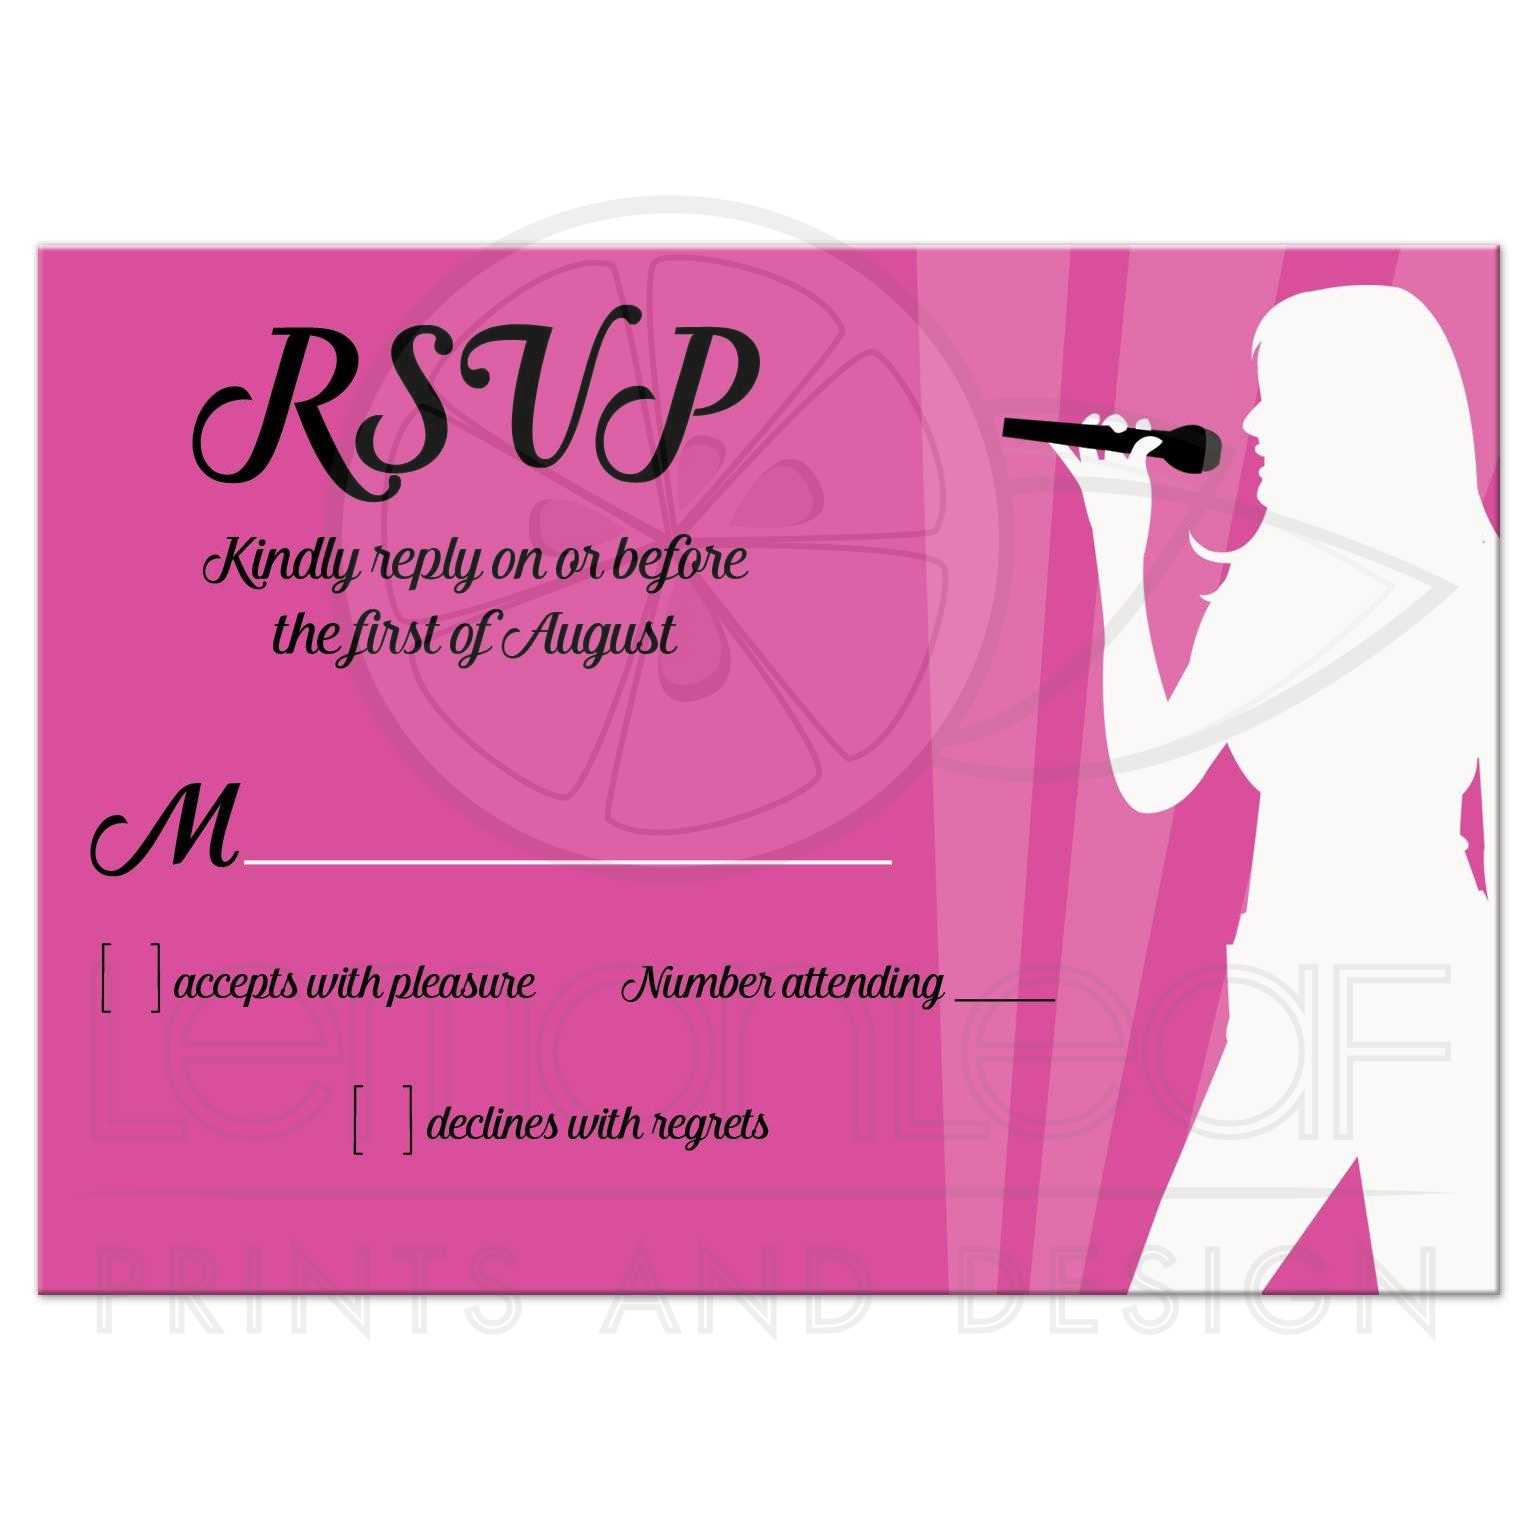 RSVP Enclosure Card | Singer Karaoke Dance Party Bat Mitzvah or ...